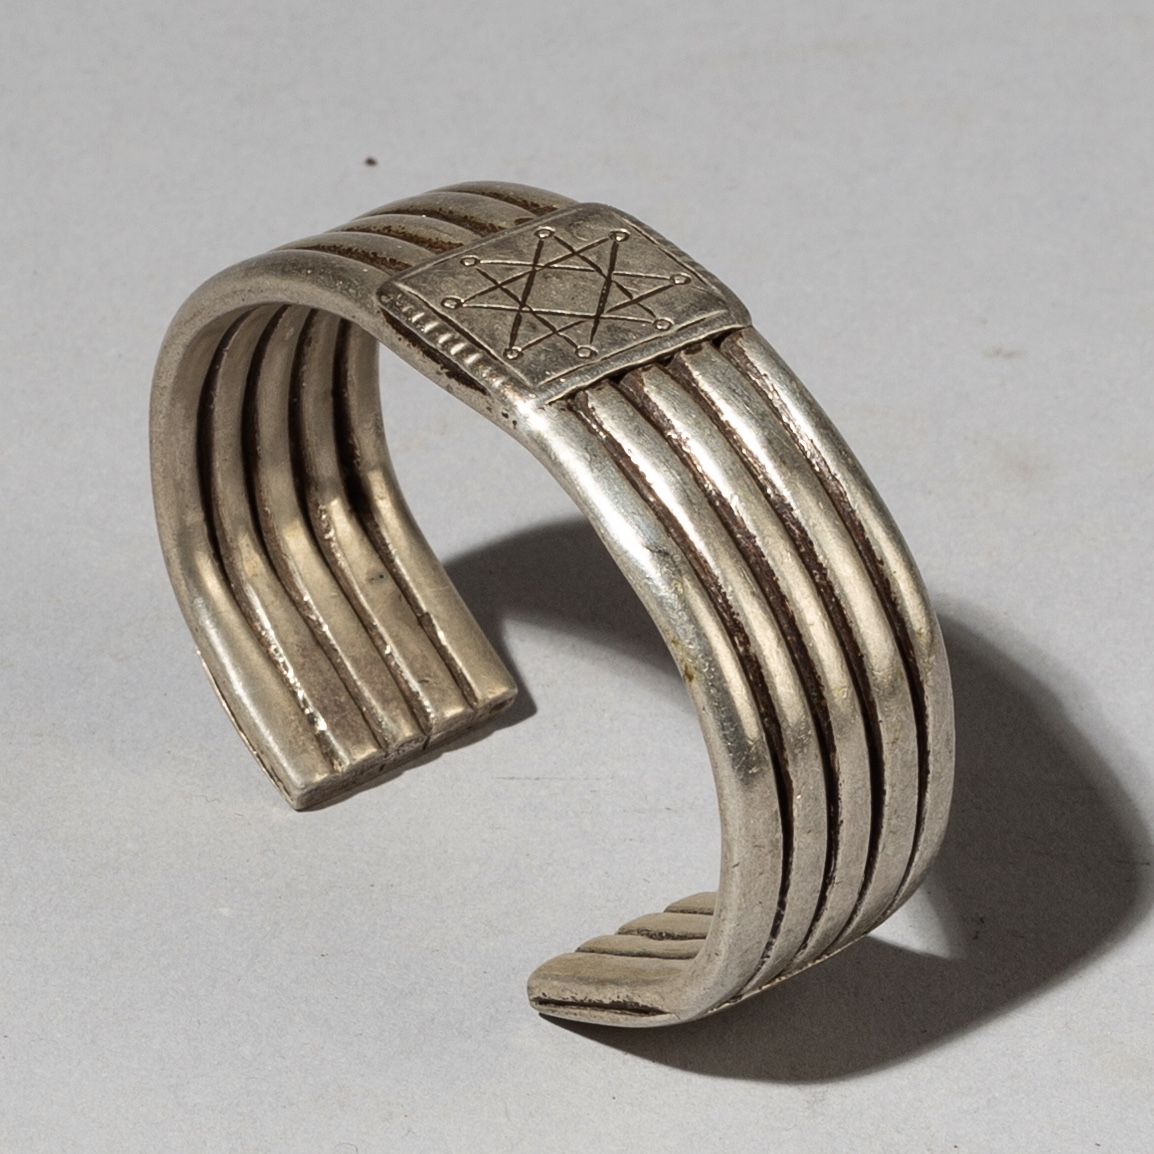 ( Sold timtim ) -A SUPERB HEAVY SILVER MANS CUFF FROM ETHIOPIA ( No 3146 )